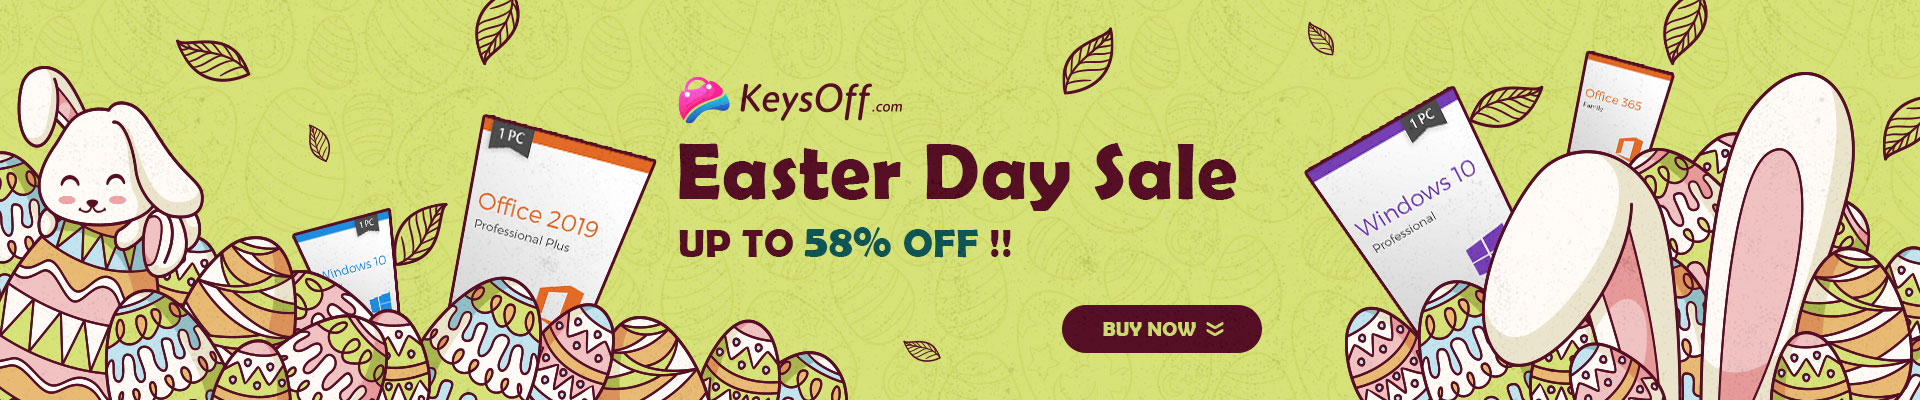 2021 easter day sale